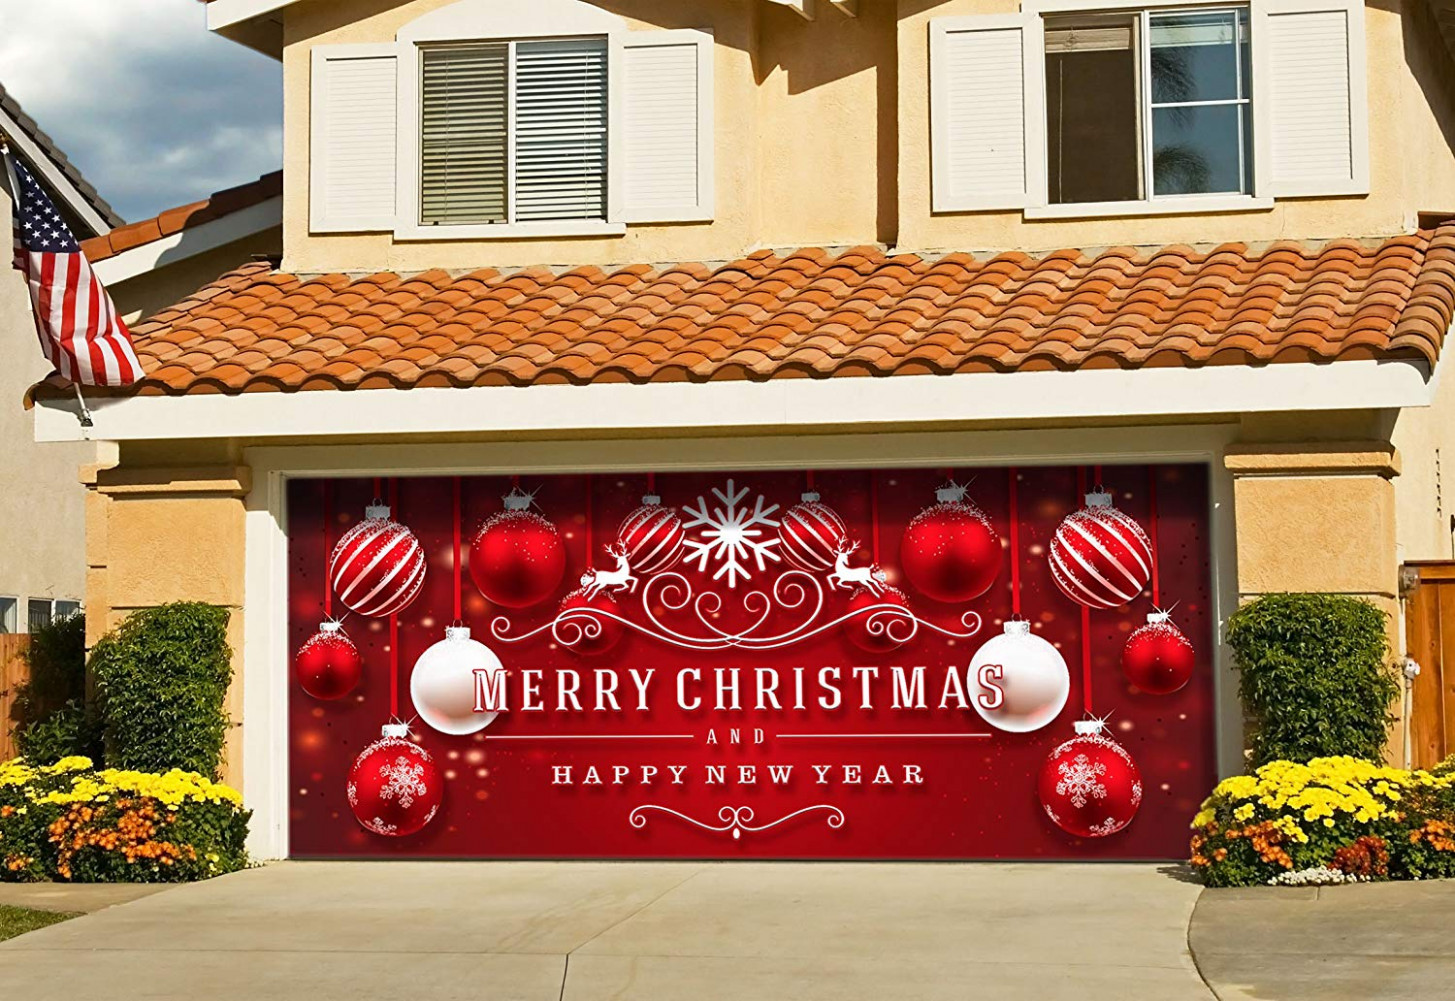 Christmas Garage Door Decorations To Make, Create And ..